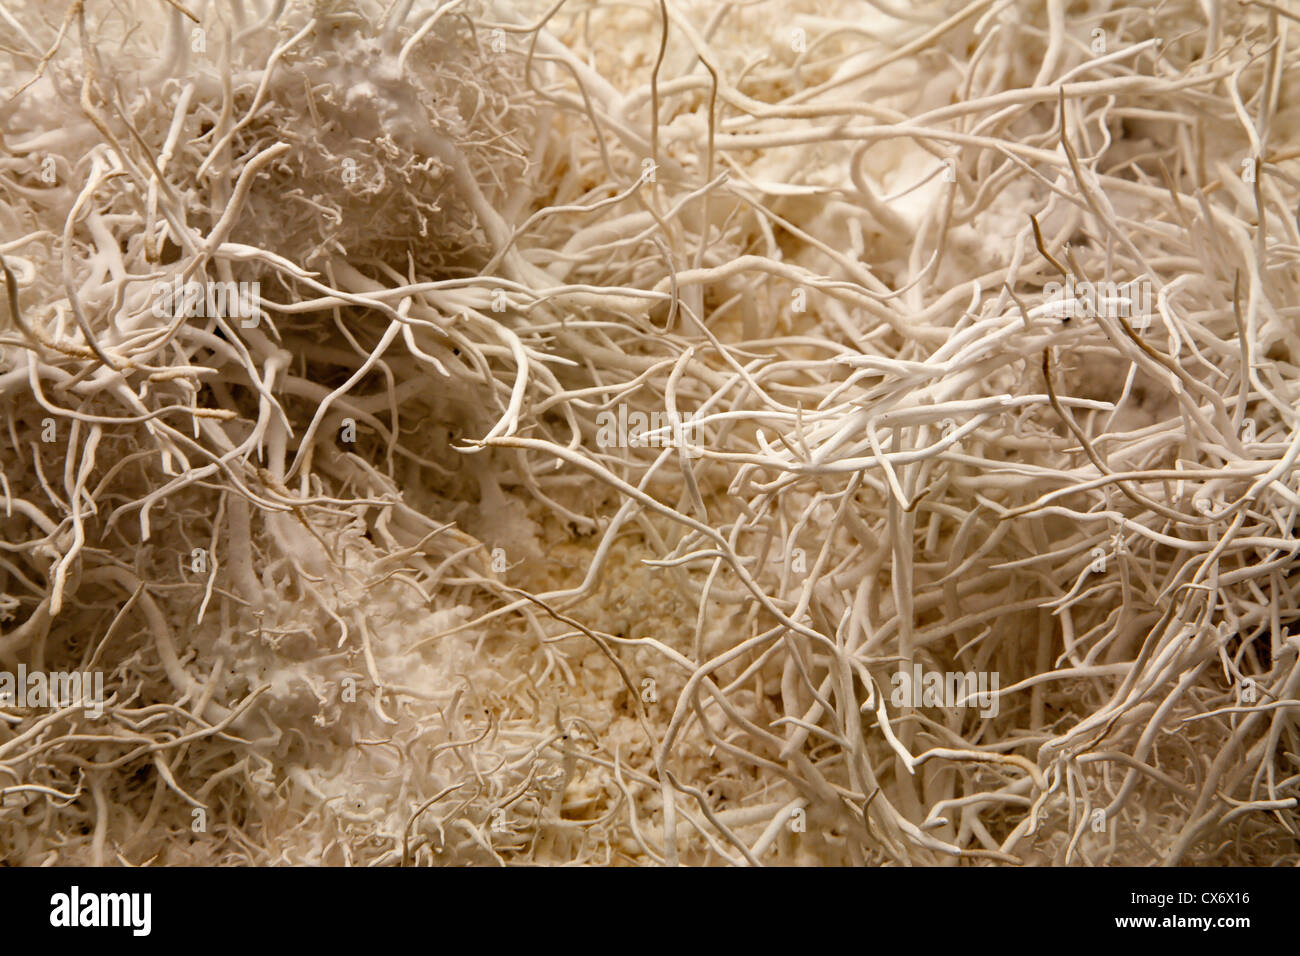 detail of aragonit structure - Stock Image